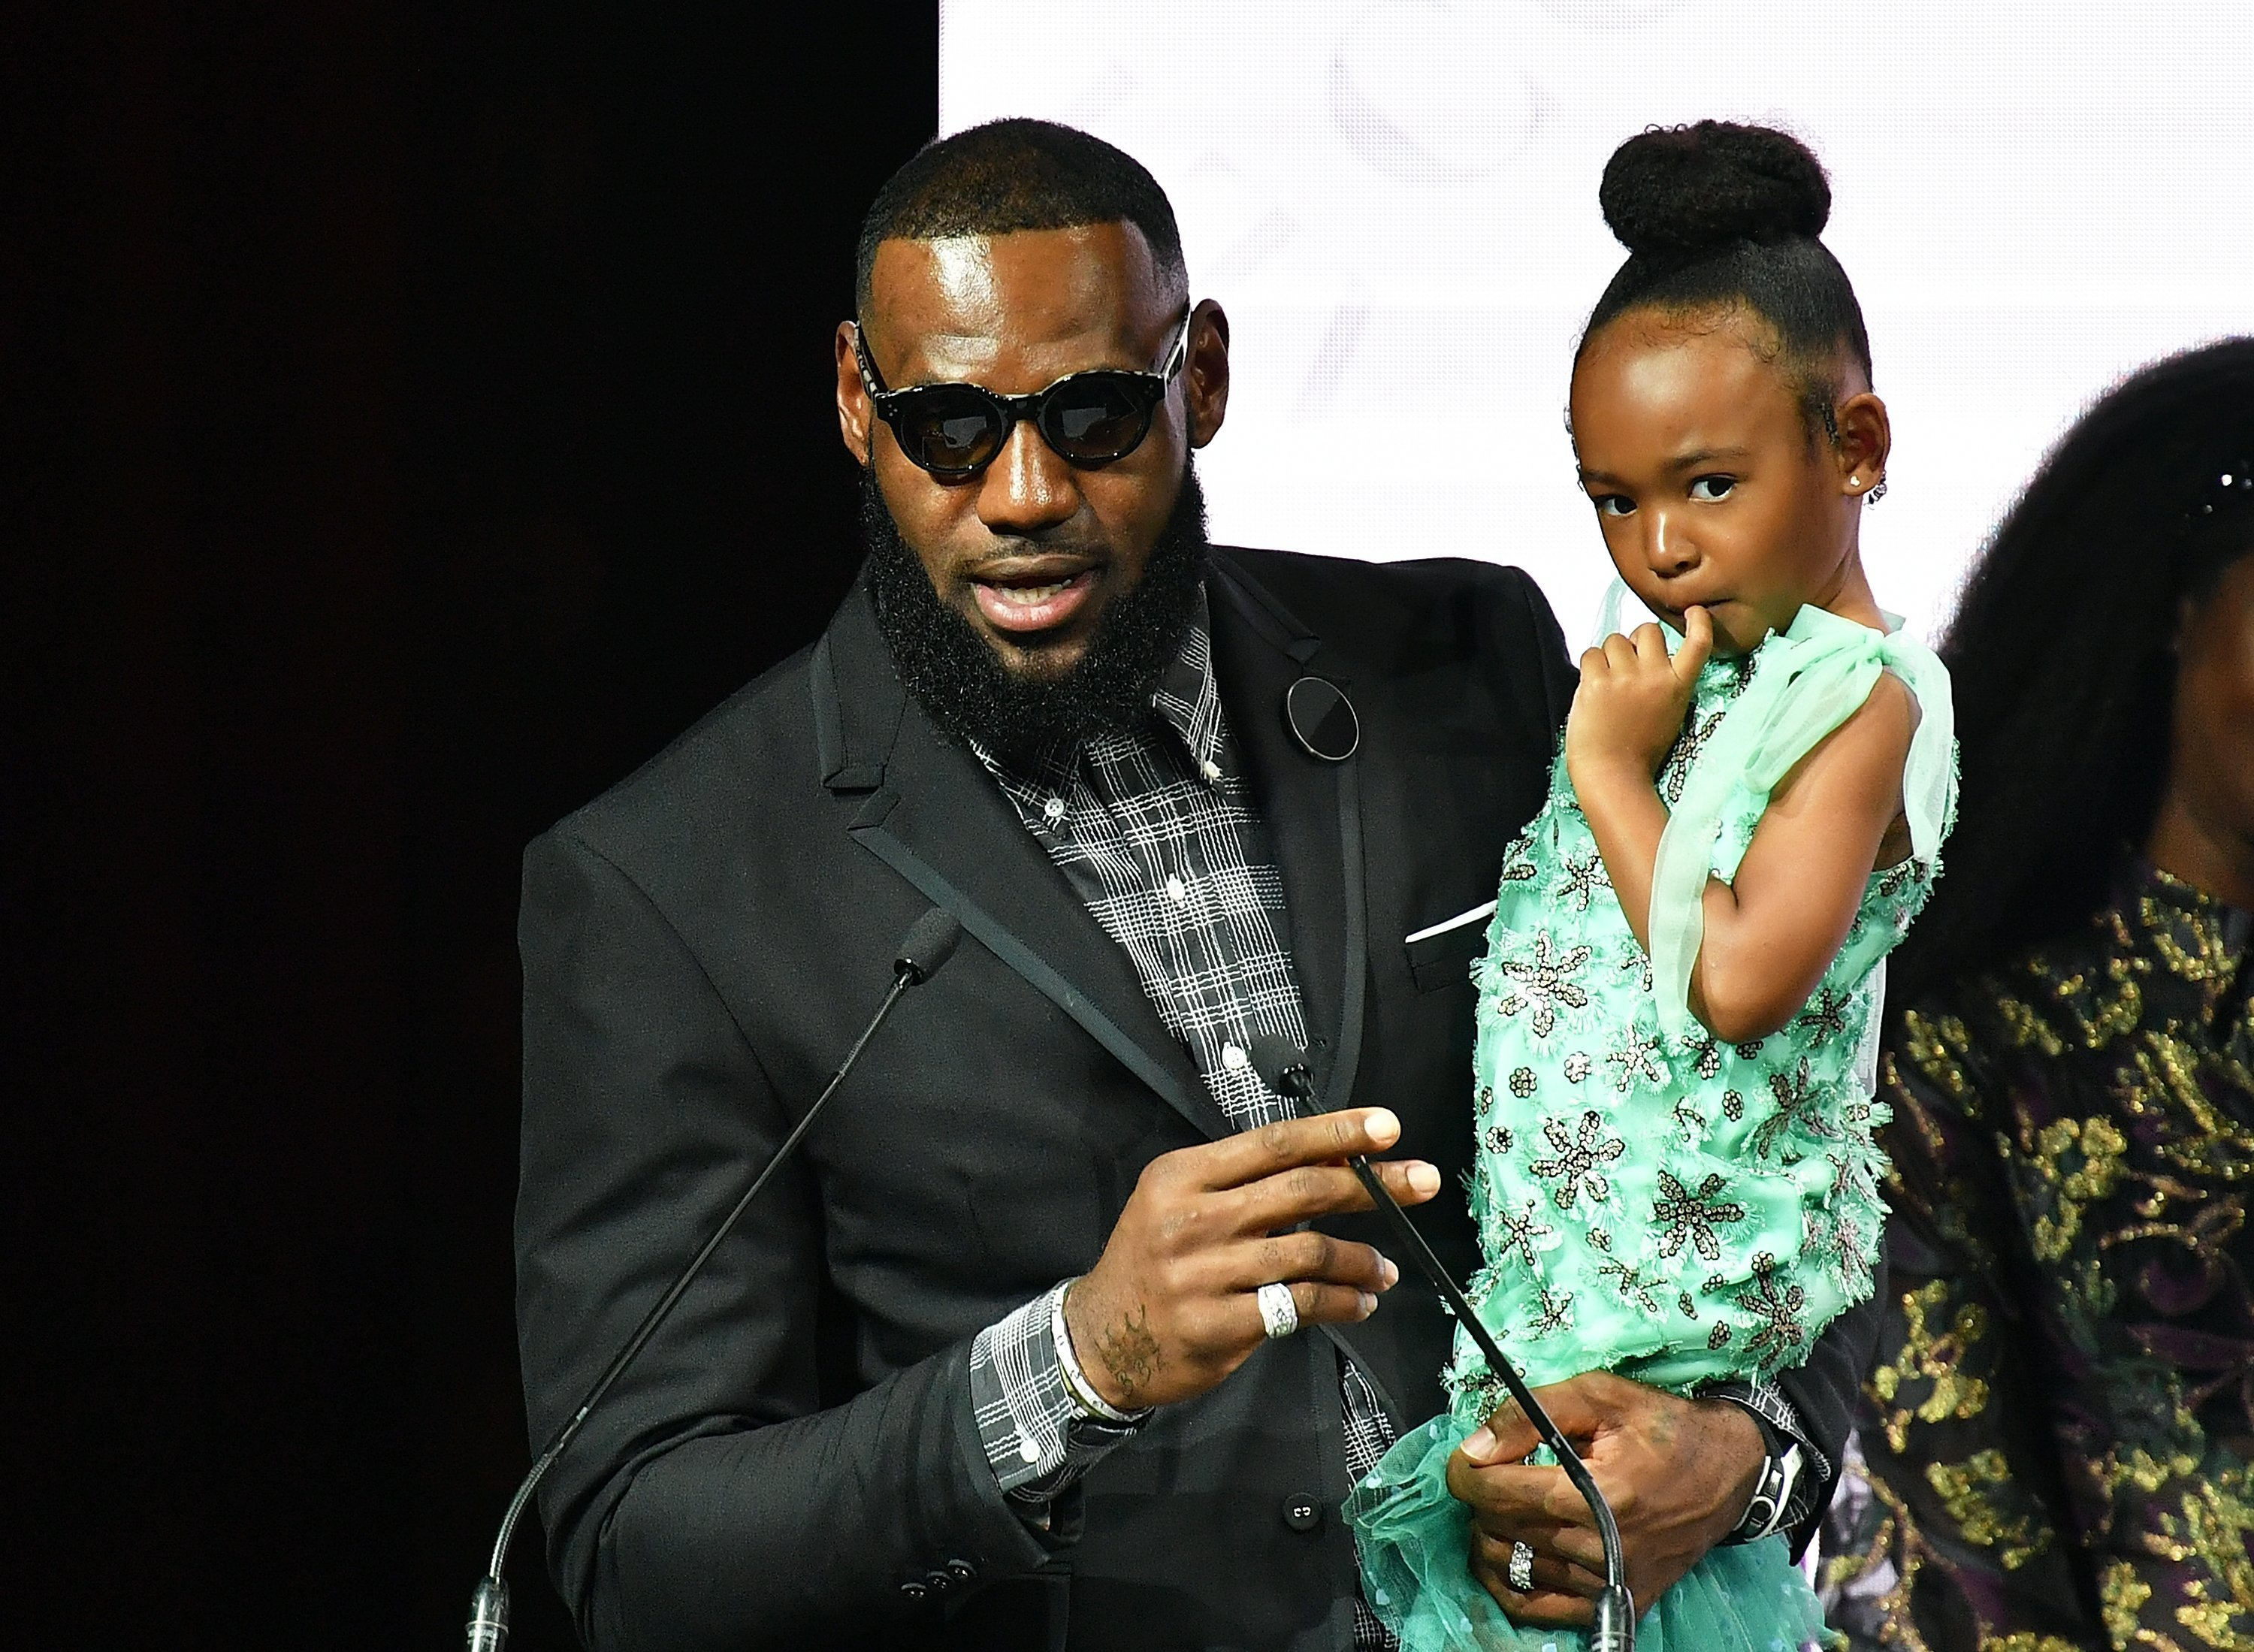 LeBron James, and daughter Zhuri James attend Harlem's Fashion Row during New York Fahion Week | Photo: Getty Image